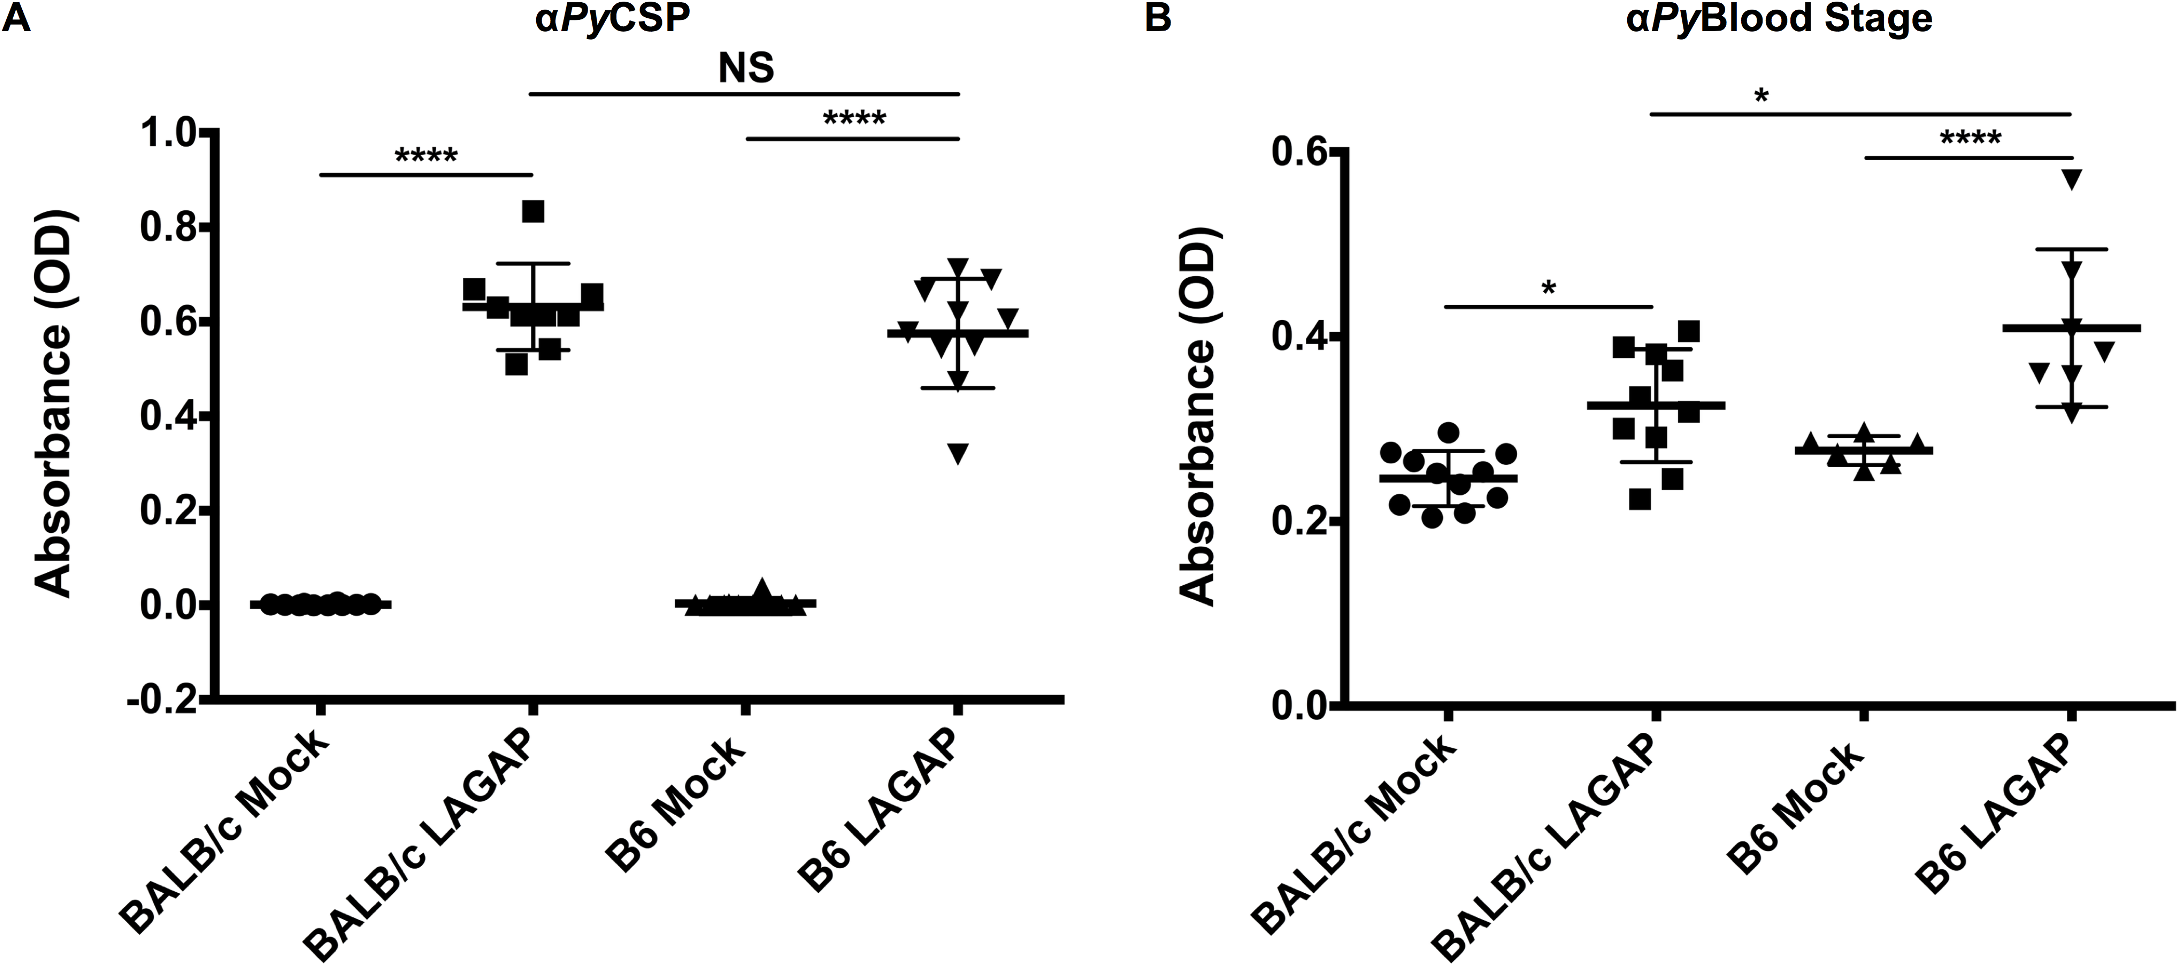 Immunization of C57BL/6 and BALB/cJ mice with LAGAP elicits antibodies against both sporozoites and BS parasites.